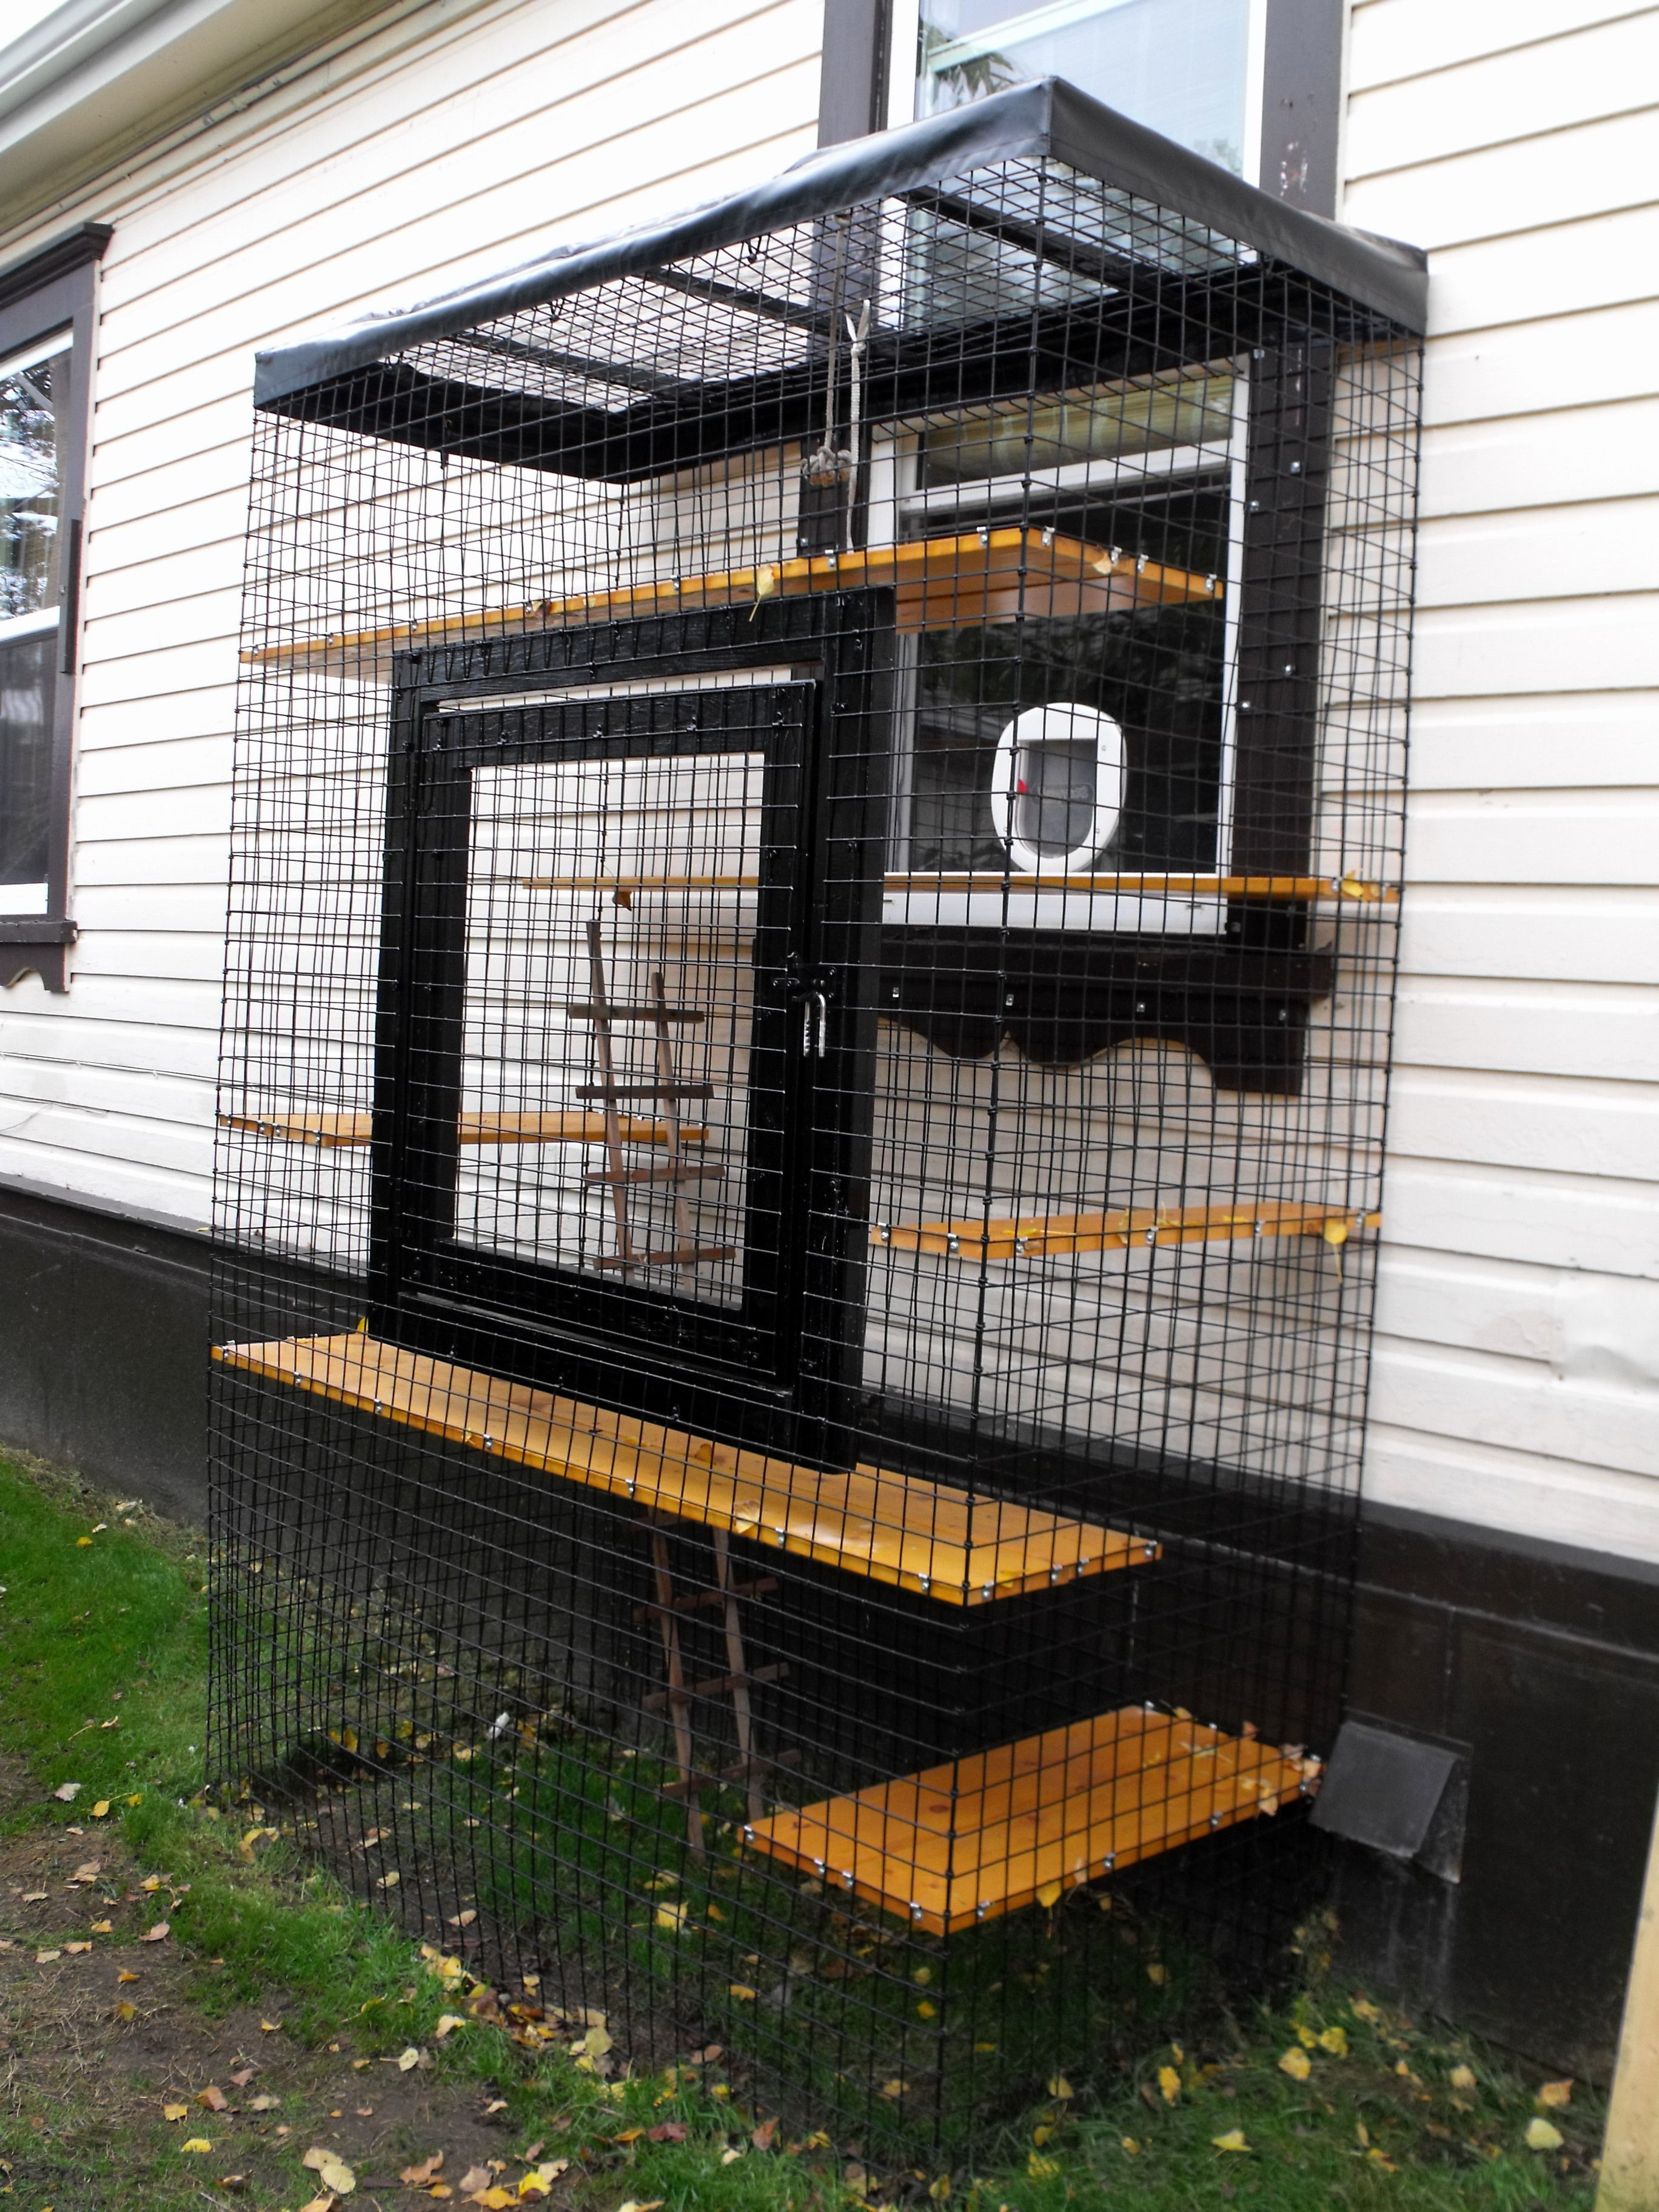 Outdoor Cat Enclosure With Rain Cover Beautiful World Living Environments Www Abeautifulwor